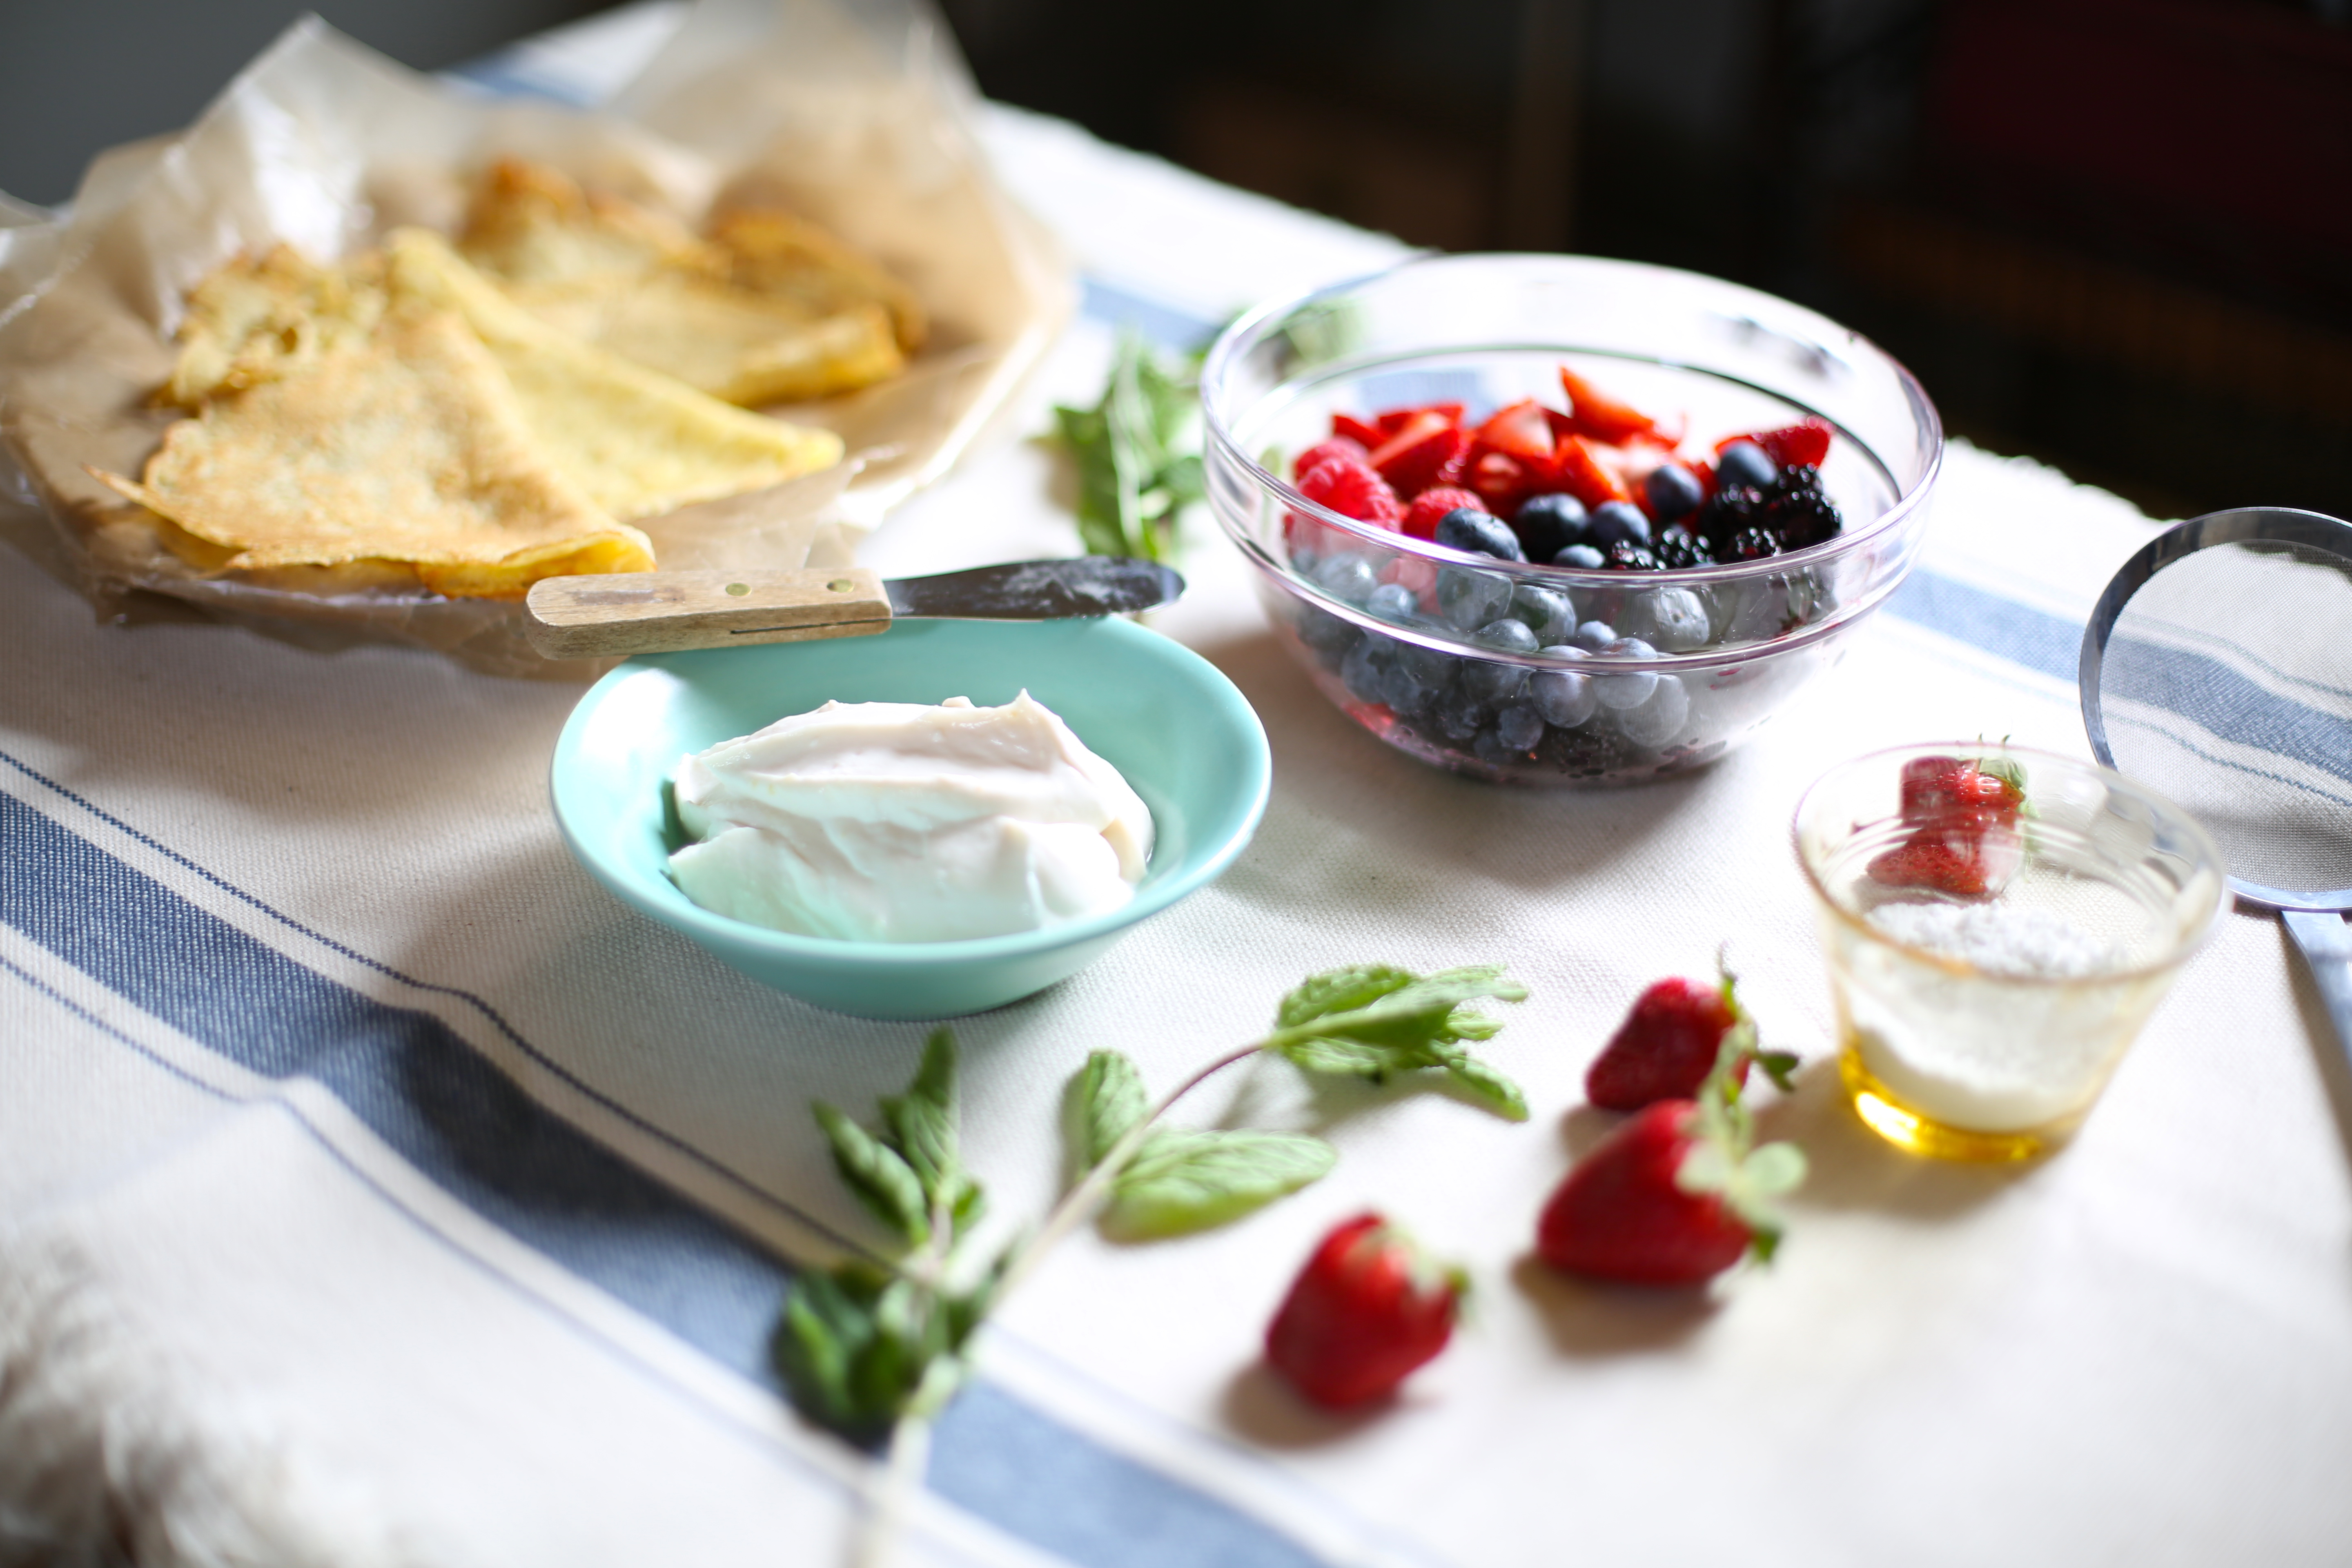 The ingredients for crepes with fresh fruit on a table.